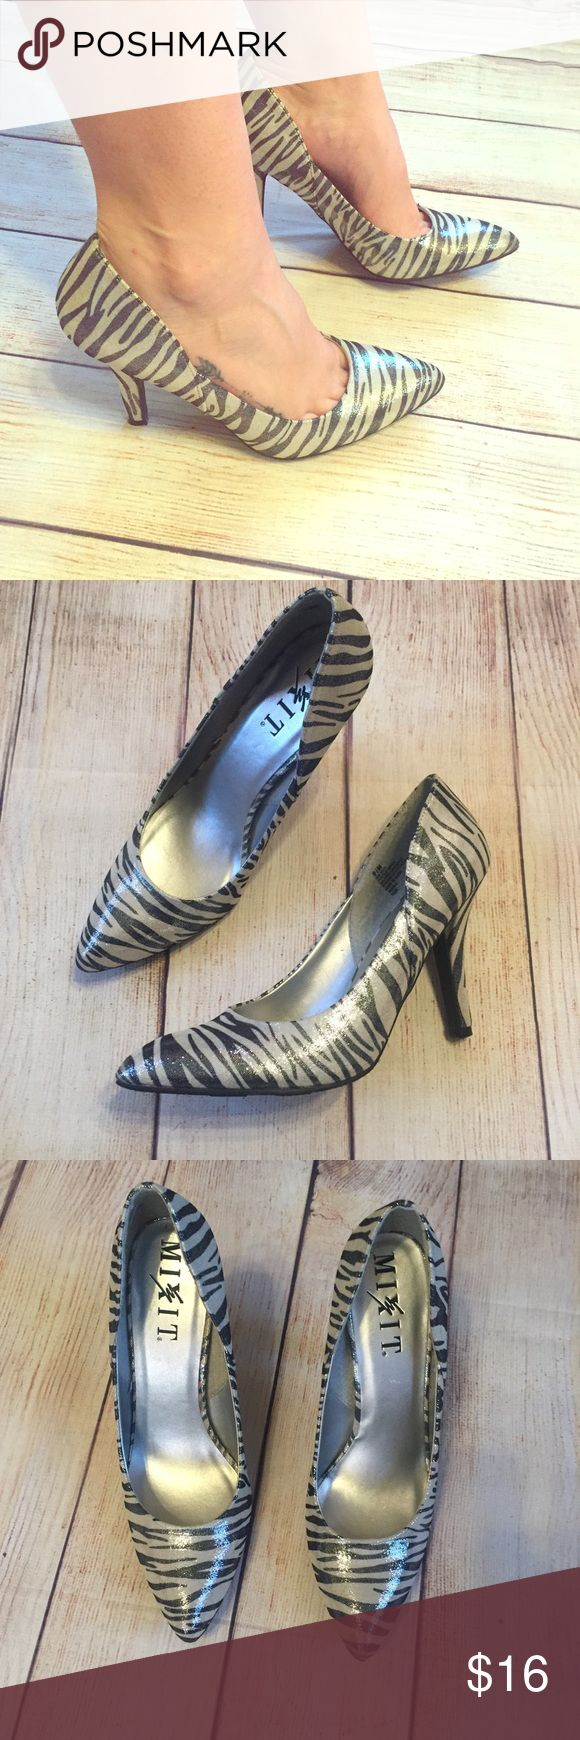 Zebra heels Zebra heels. Material has a shiny metallic effect to it. Never worn outside. Medium height heels. Feel free to ask for more photos, etc. mixit Shoes Heels